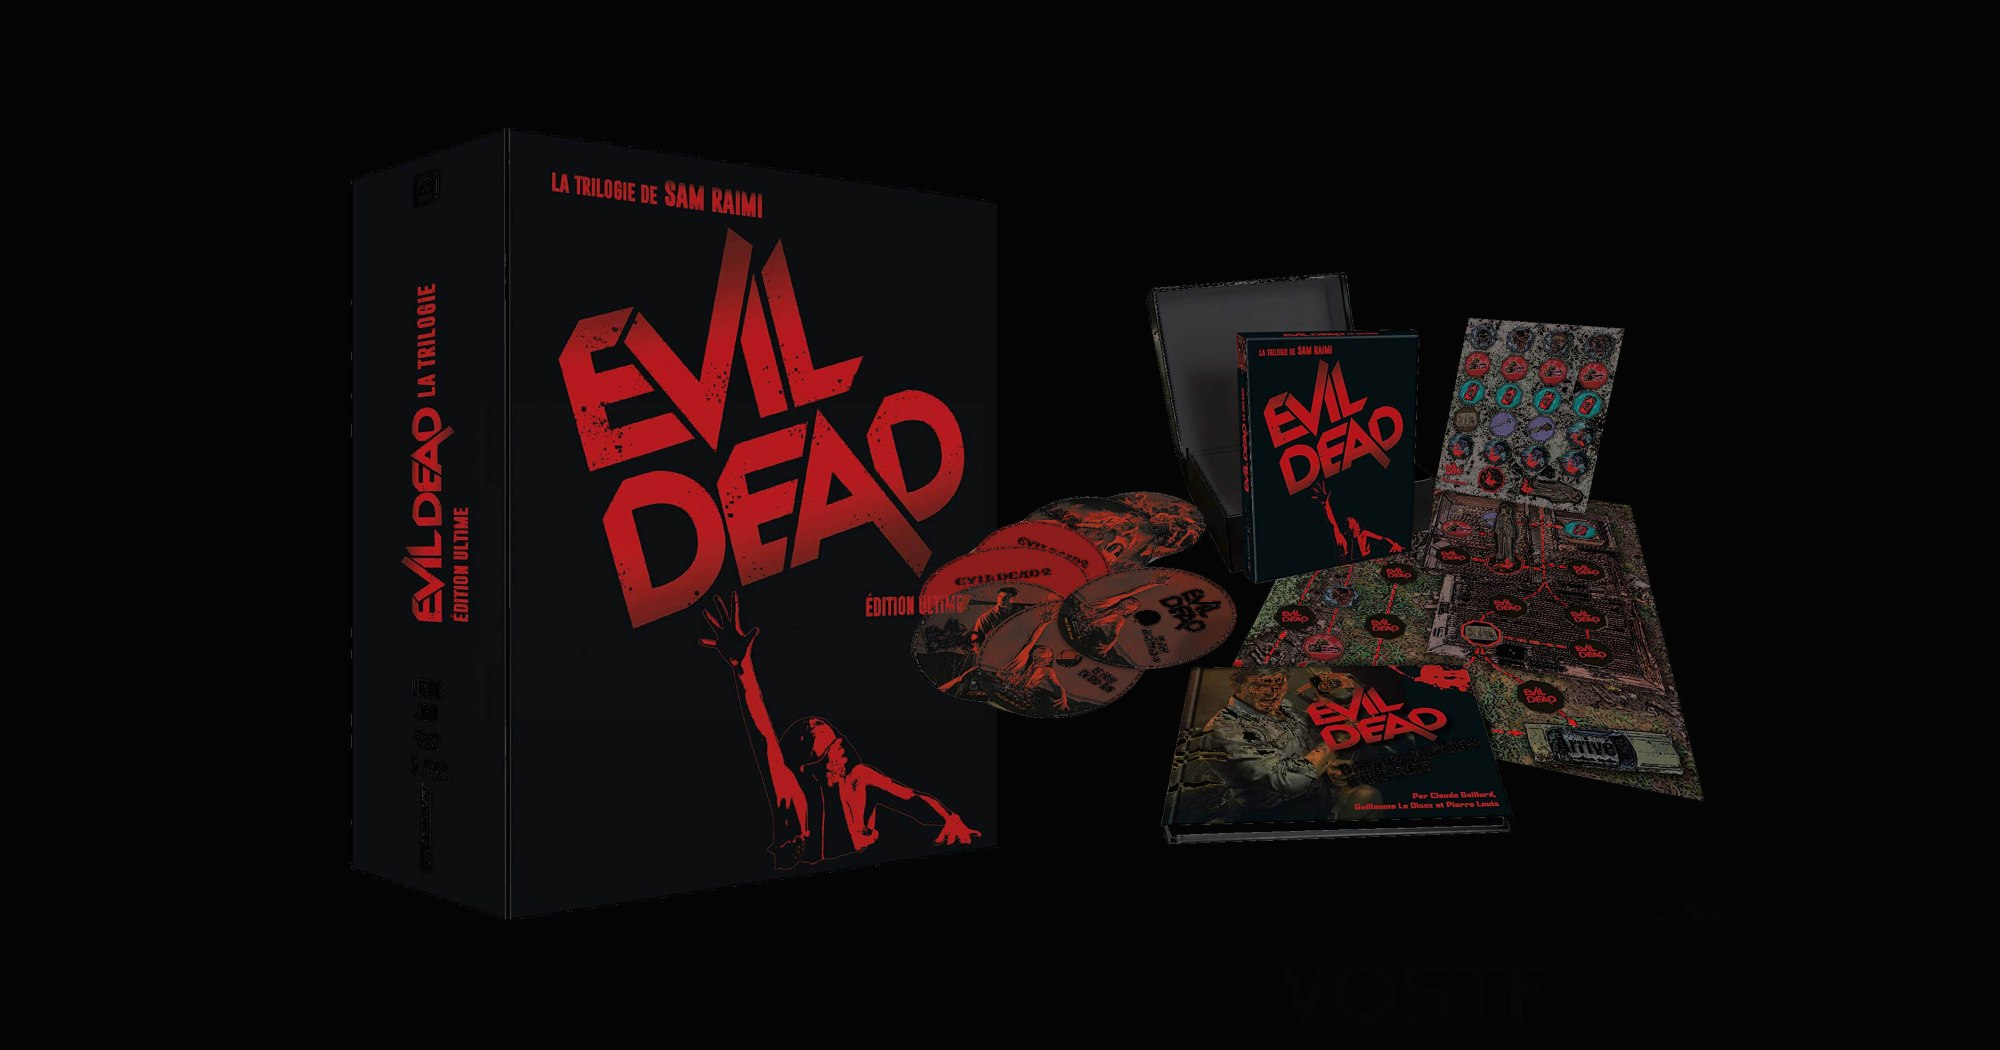 Edition ultime d'Evil Dead, disponible chez L'Atelier D'Images